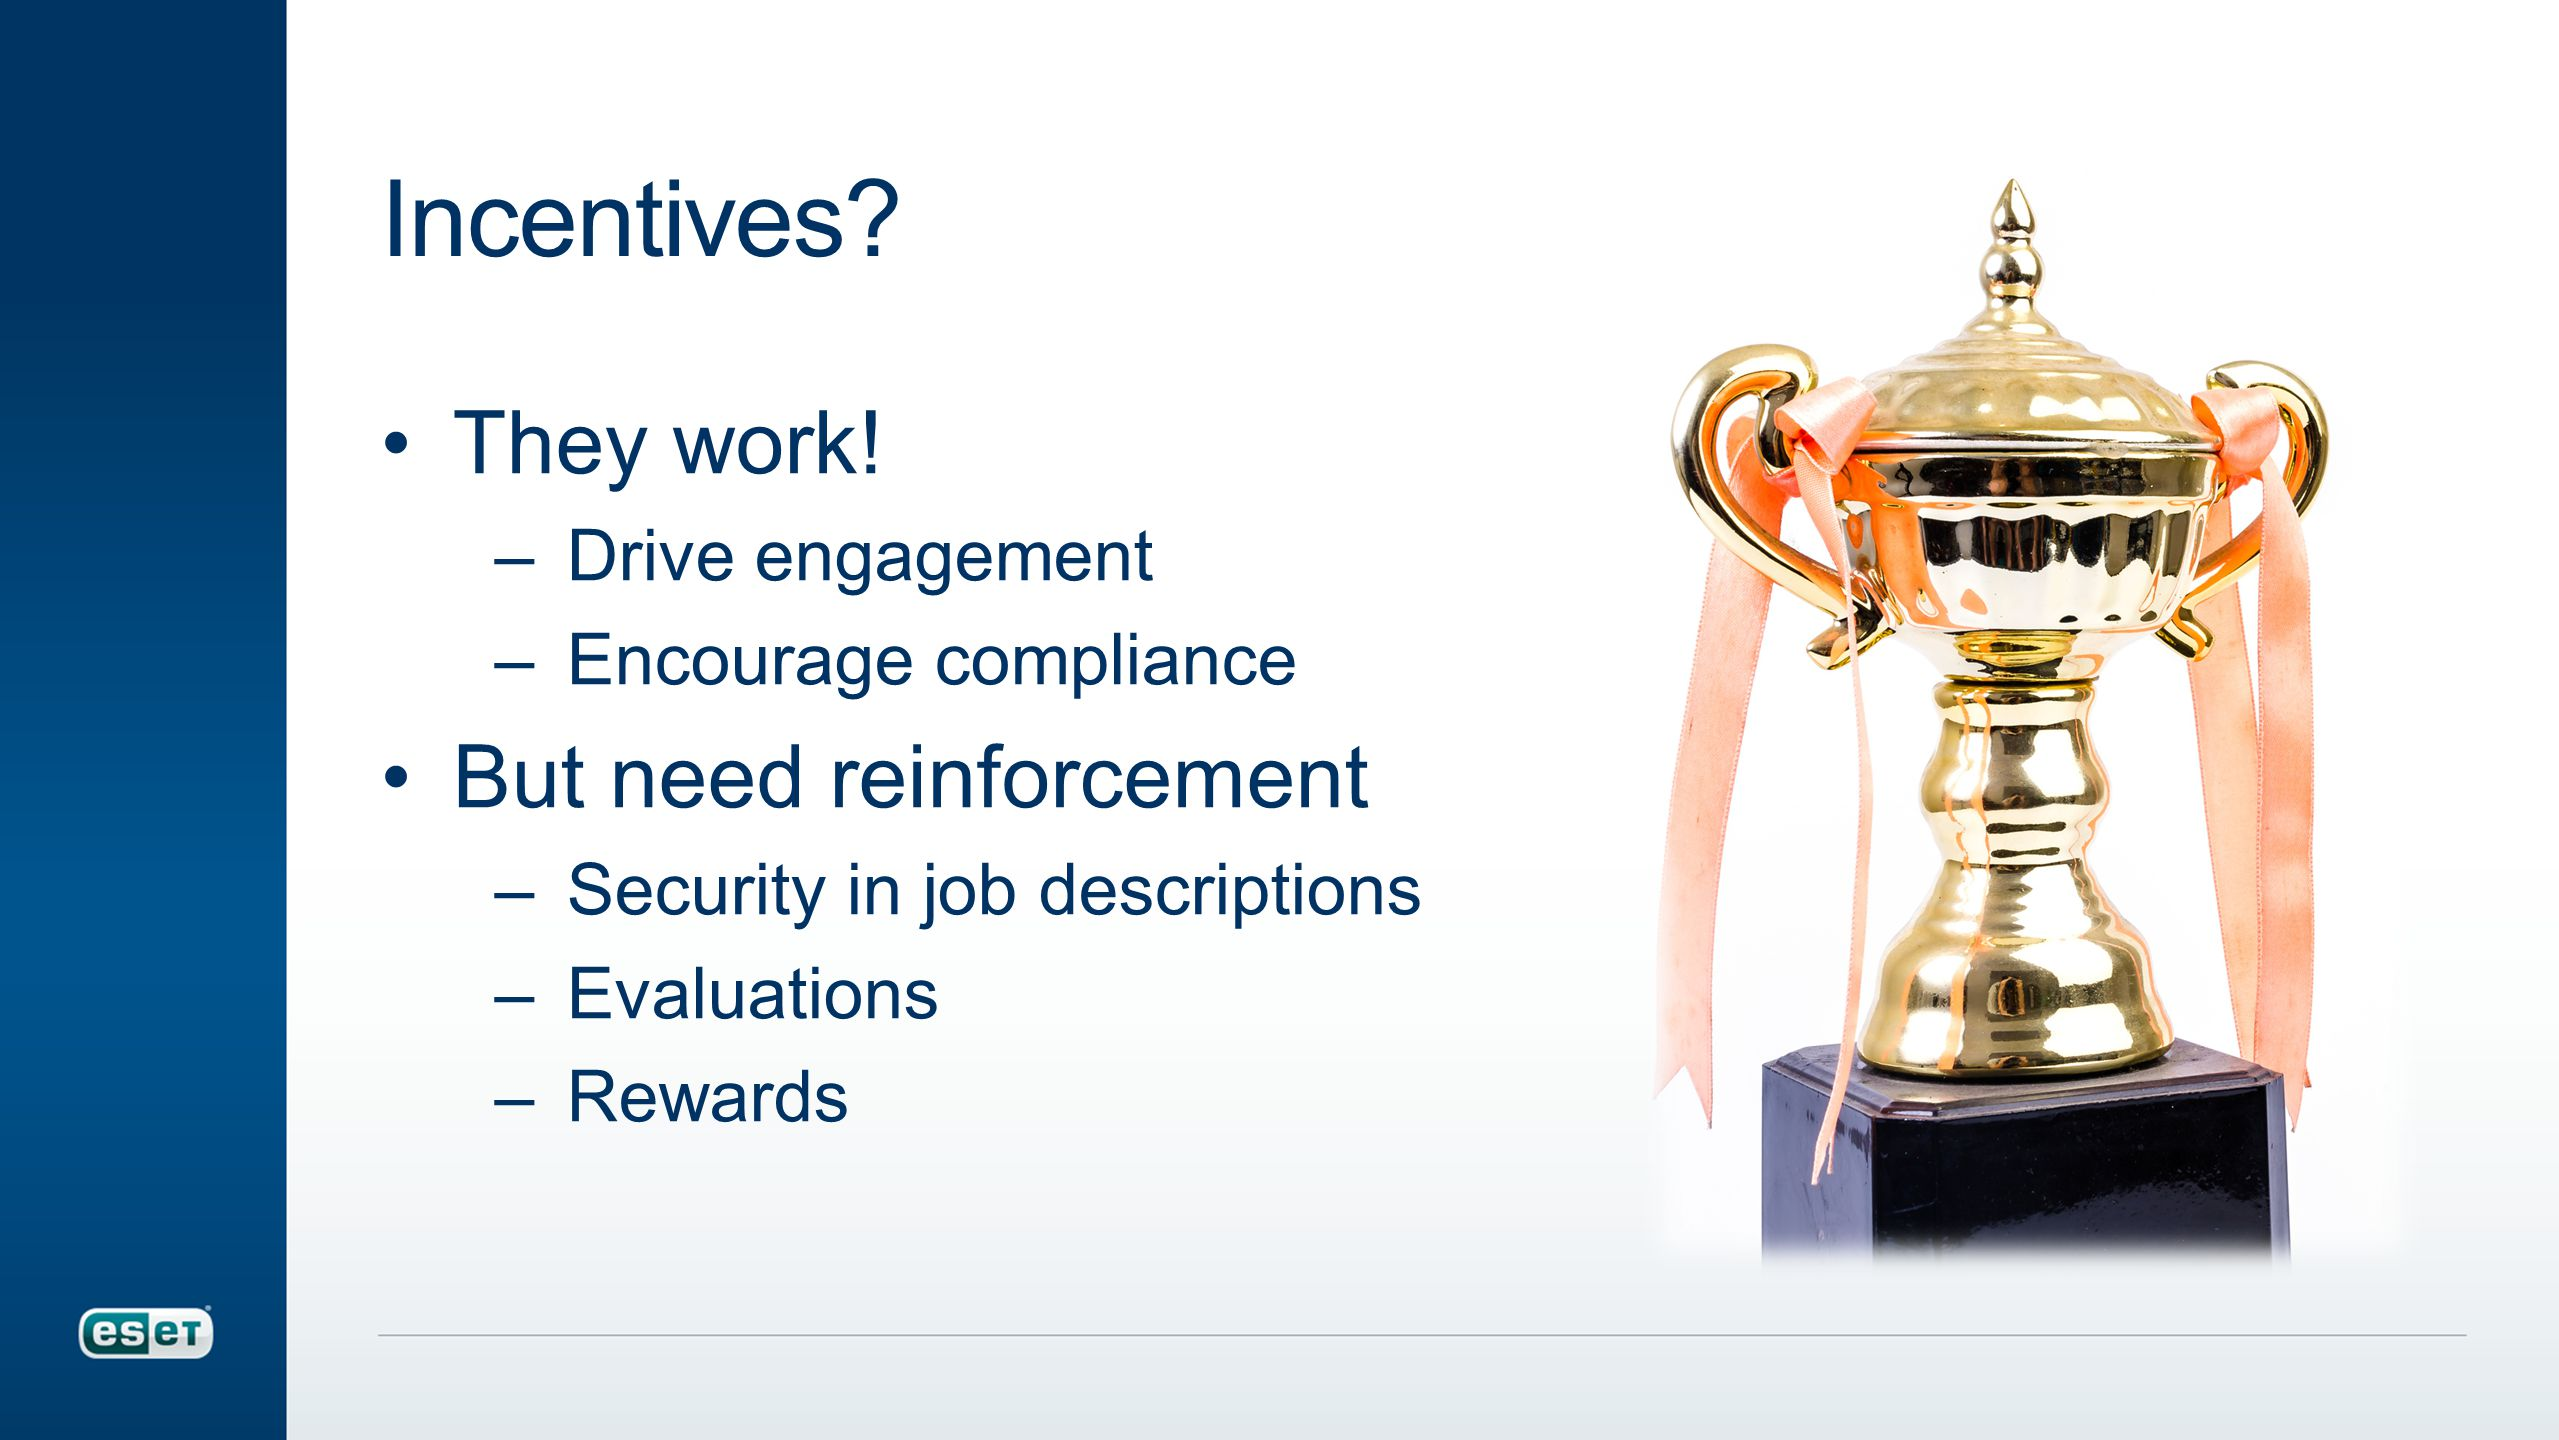 Incentives. They work.